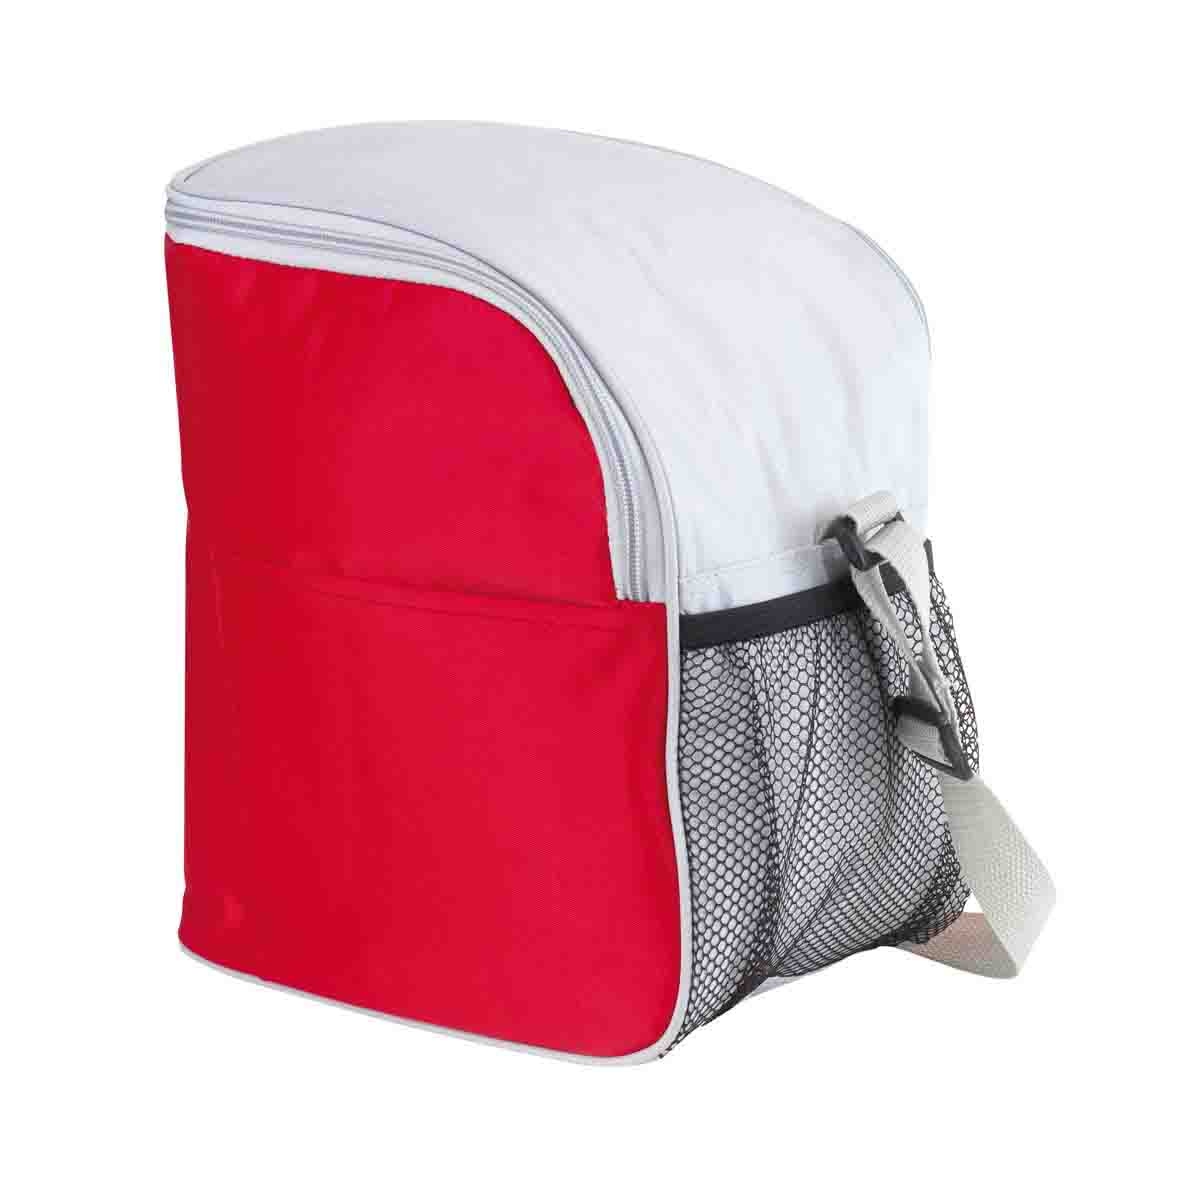 Cooler bag 'Glacial' - Red ins-0801141